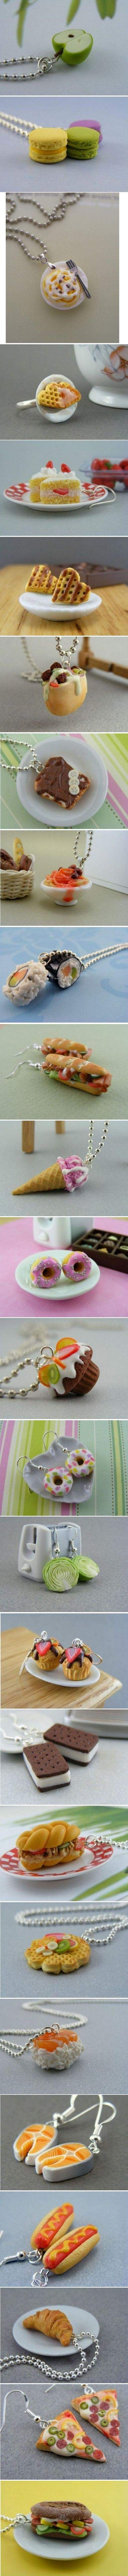 So cute!! I like the ice cream bar earrings and the crossoint necklace the best :)